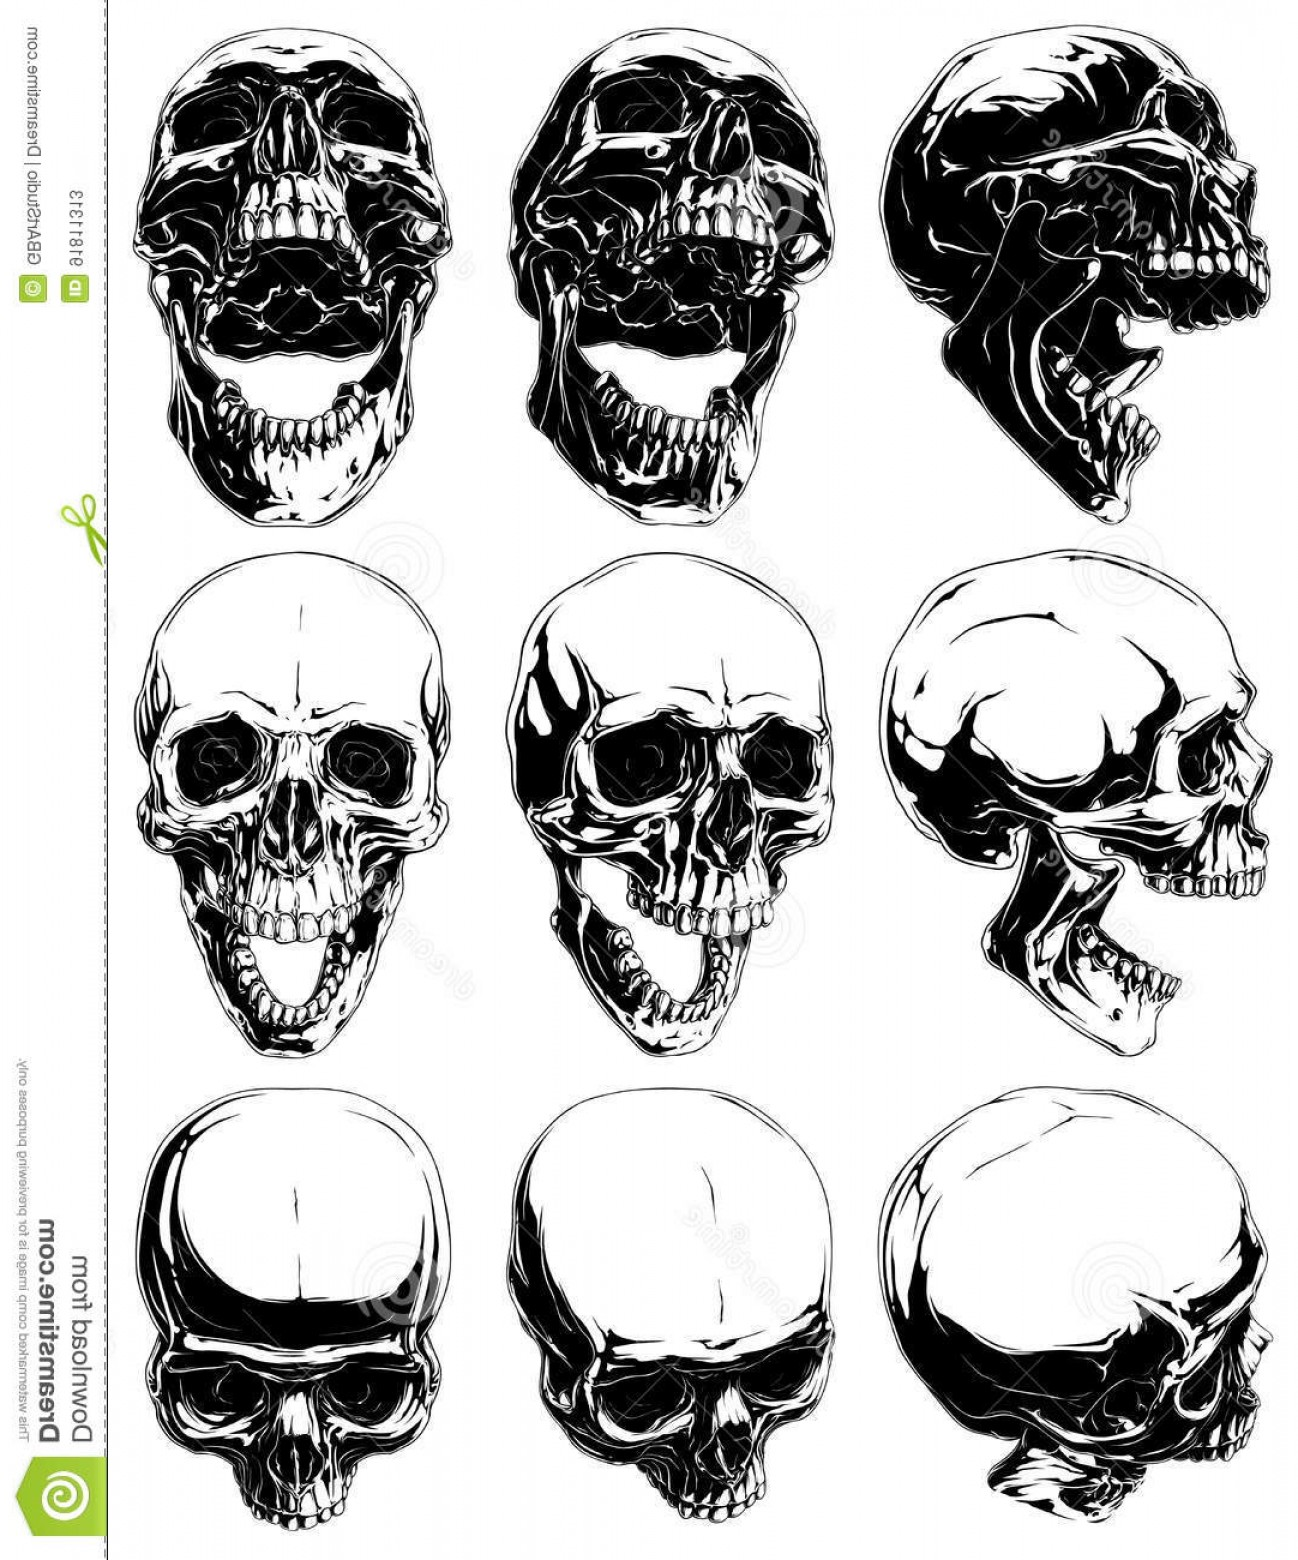 Cool Skull Vector: Stock Illustration Realistic Cool Detailed Graphic Skulls Vector Set Black White Human Different Projections Open Mouth Image